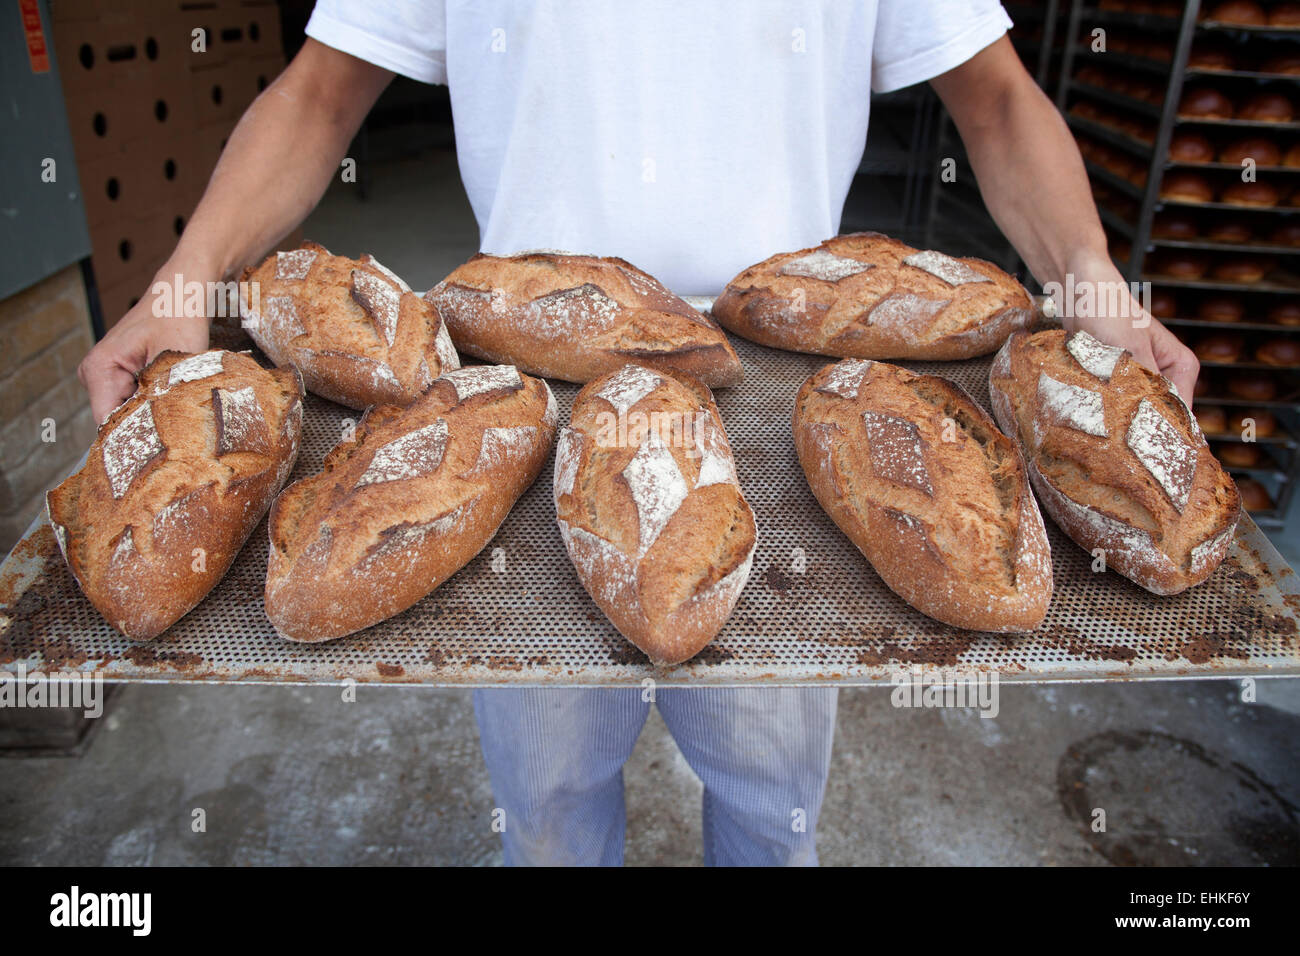 Baker holding a tray of loaves of freshly baked wholemeal bread - Stock Image